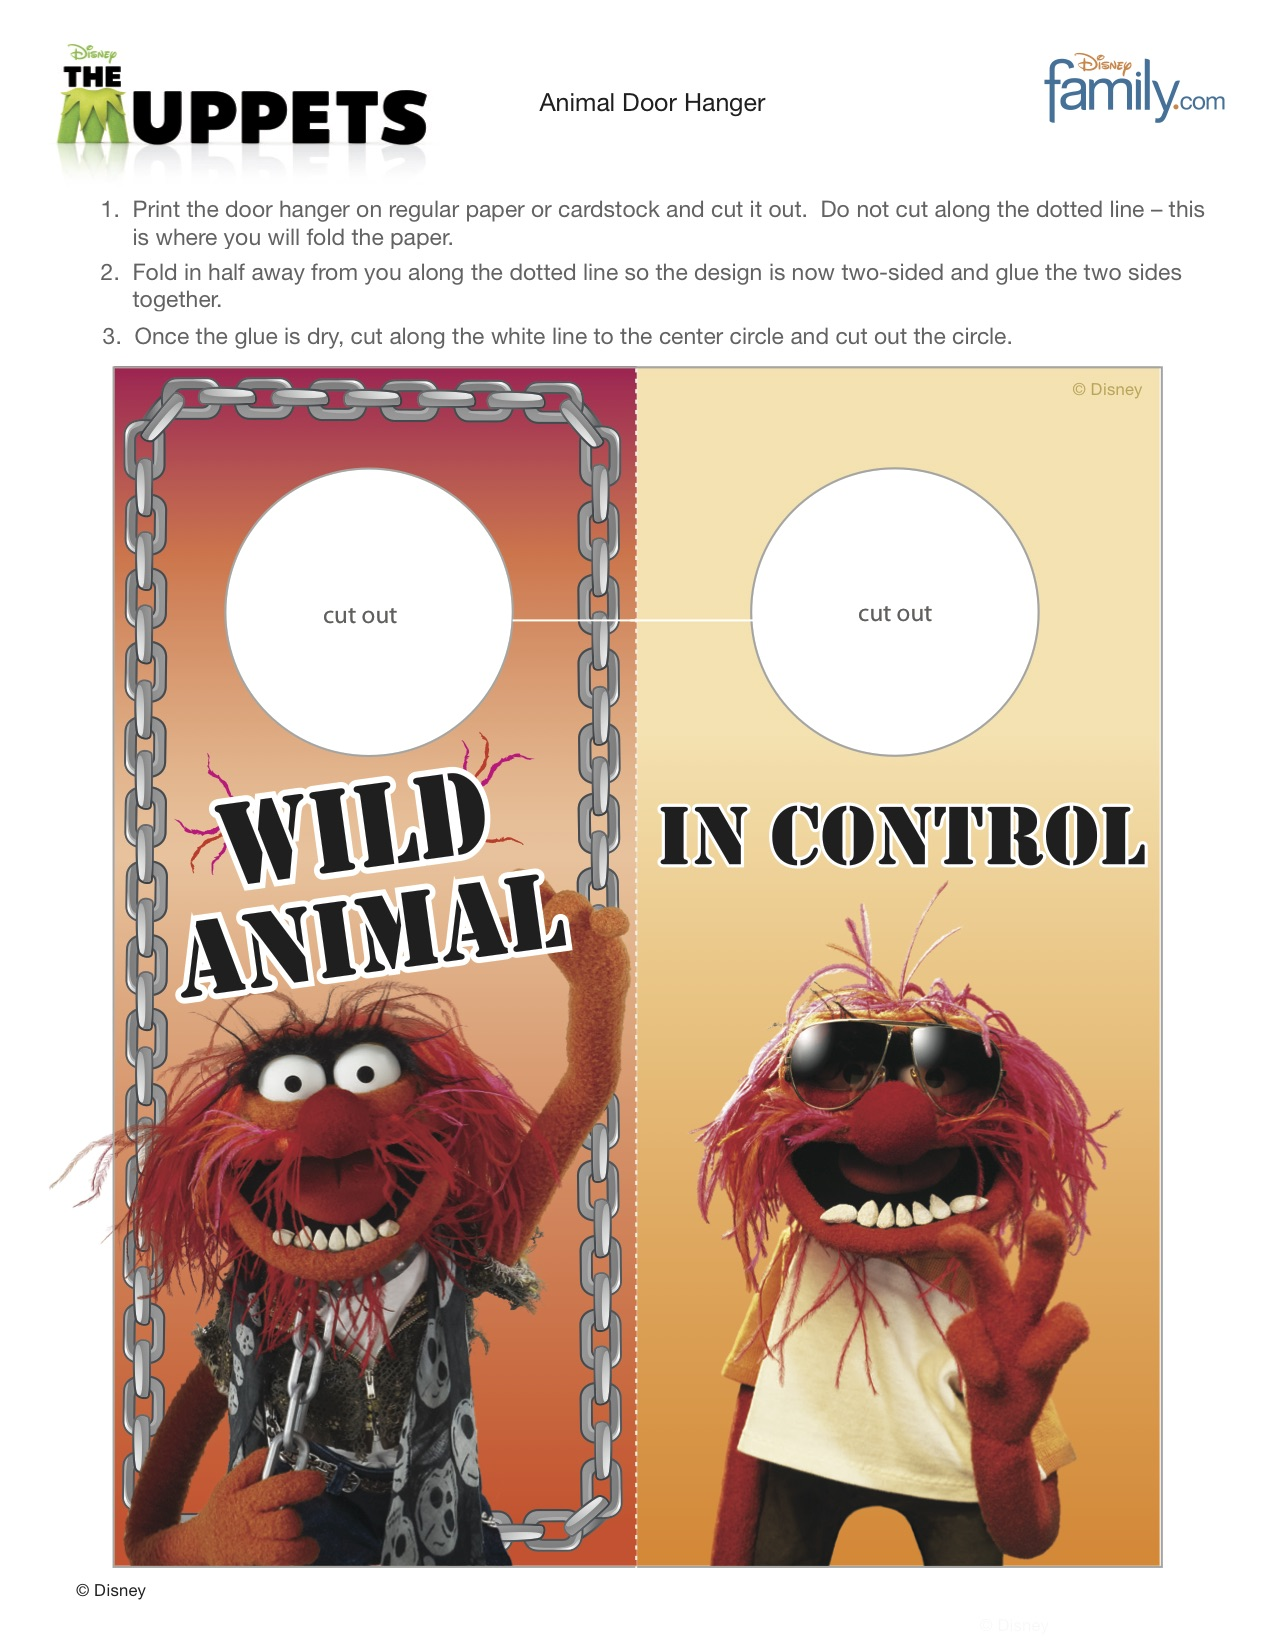 muppets-animal-door-hanger-printable-1011 copy.jpg